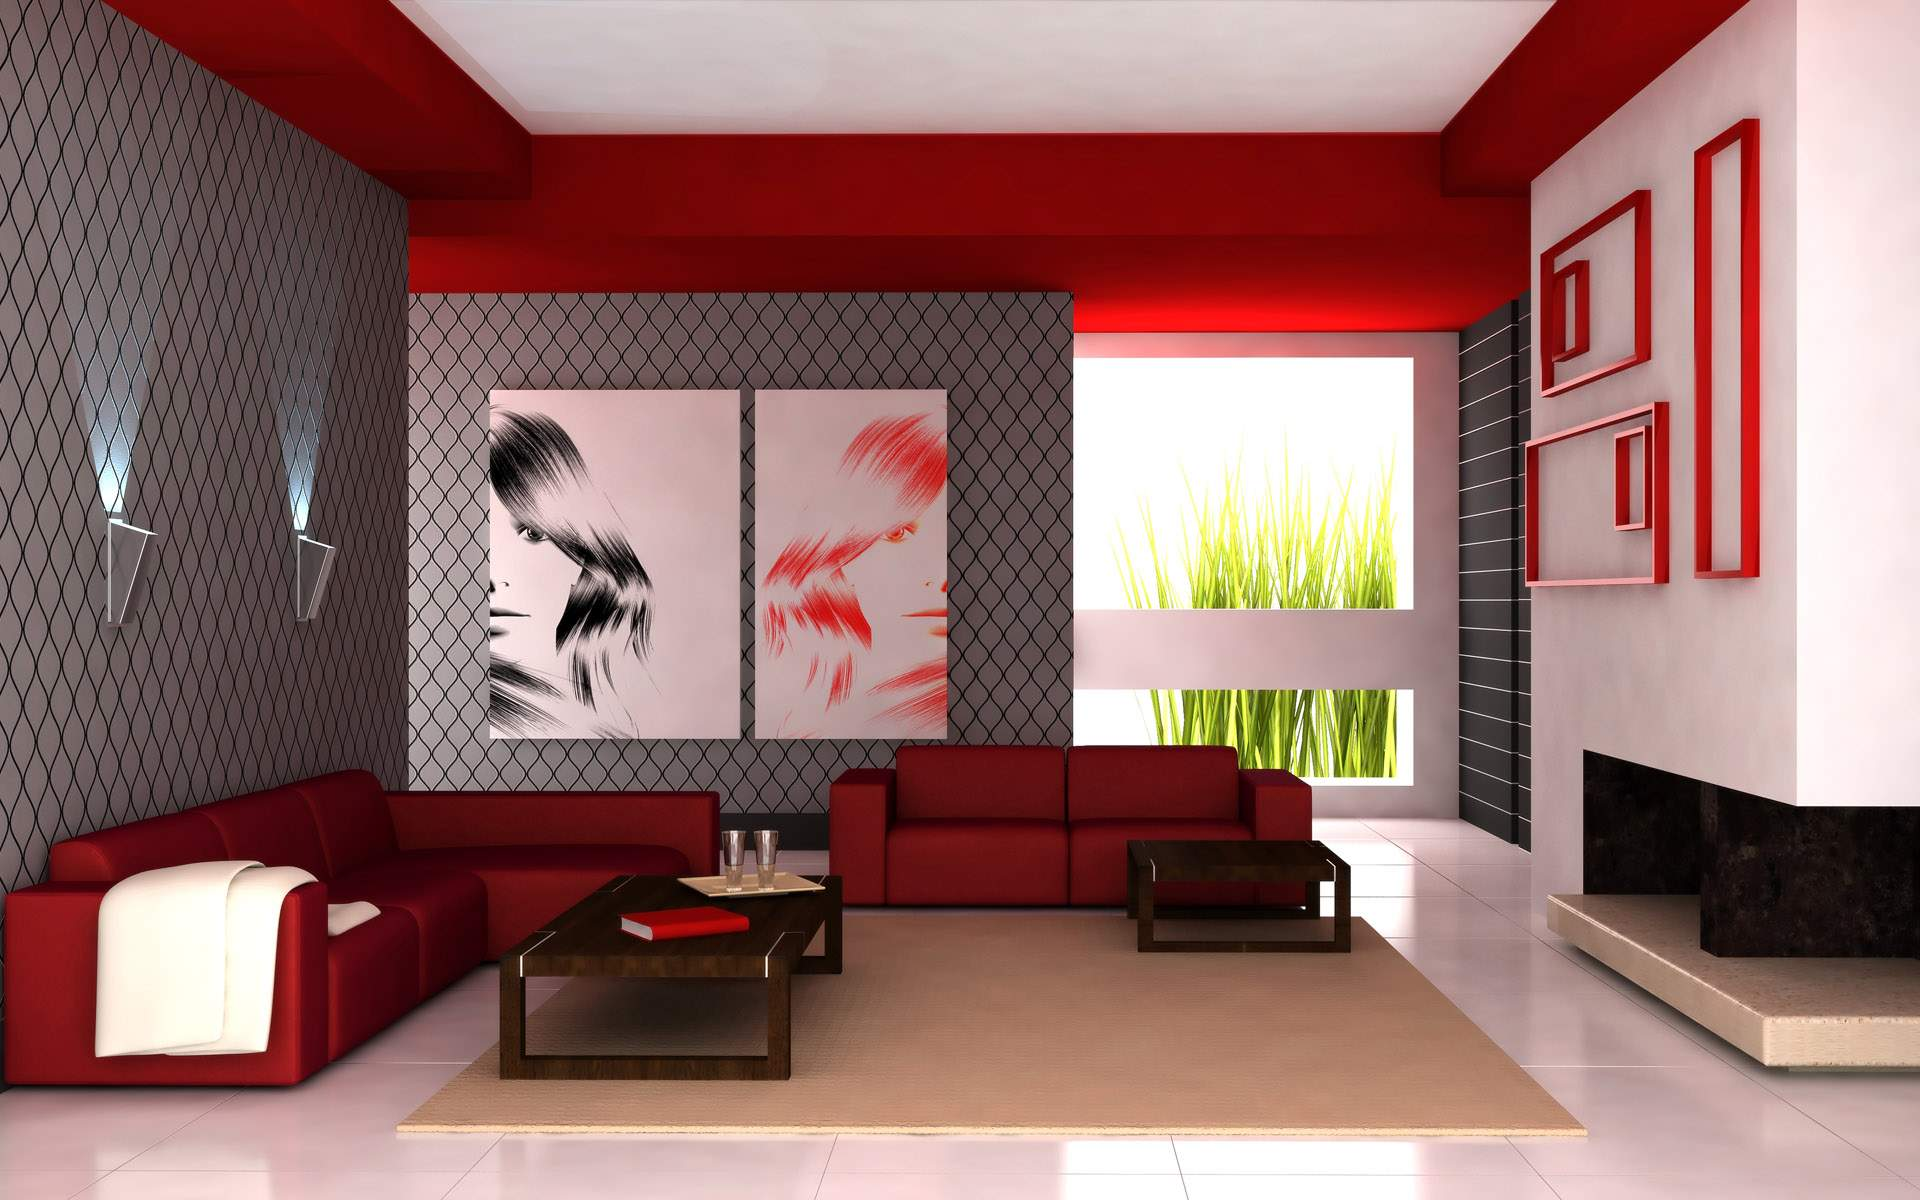 living-room-fashionable-simple-living-room-design-showing-l-shape-red-leather-sectionals-sofa-with-track-arms-and-low-tilt-backrest-also-rectangular-dark-brown-solid-wood-coffee-table-above-cream-carp